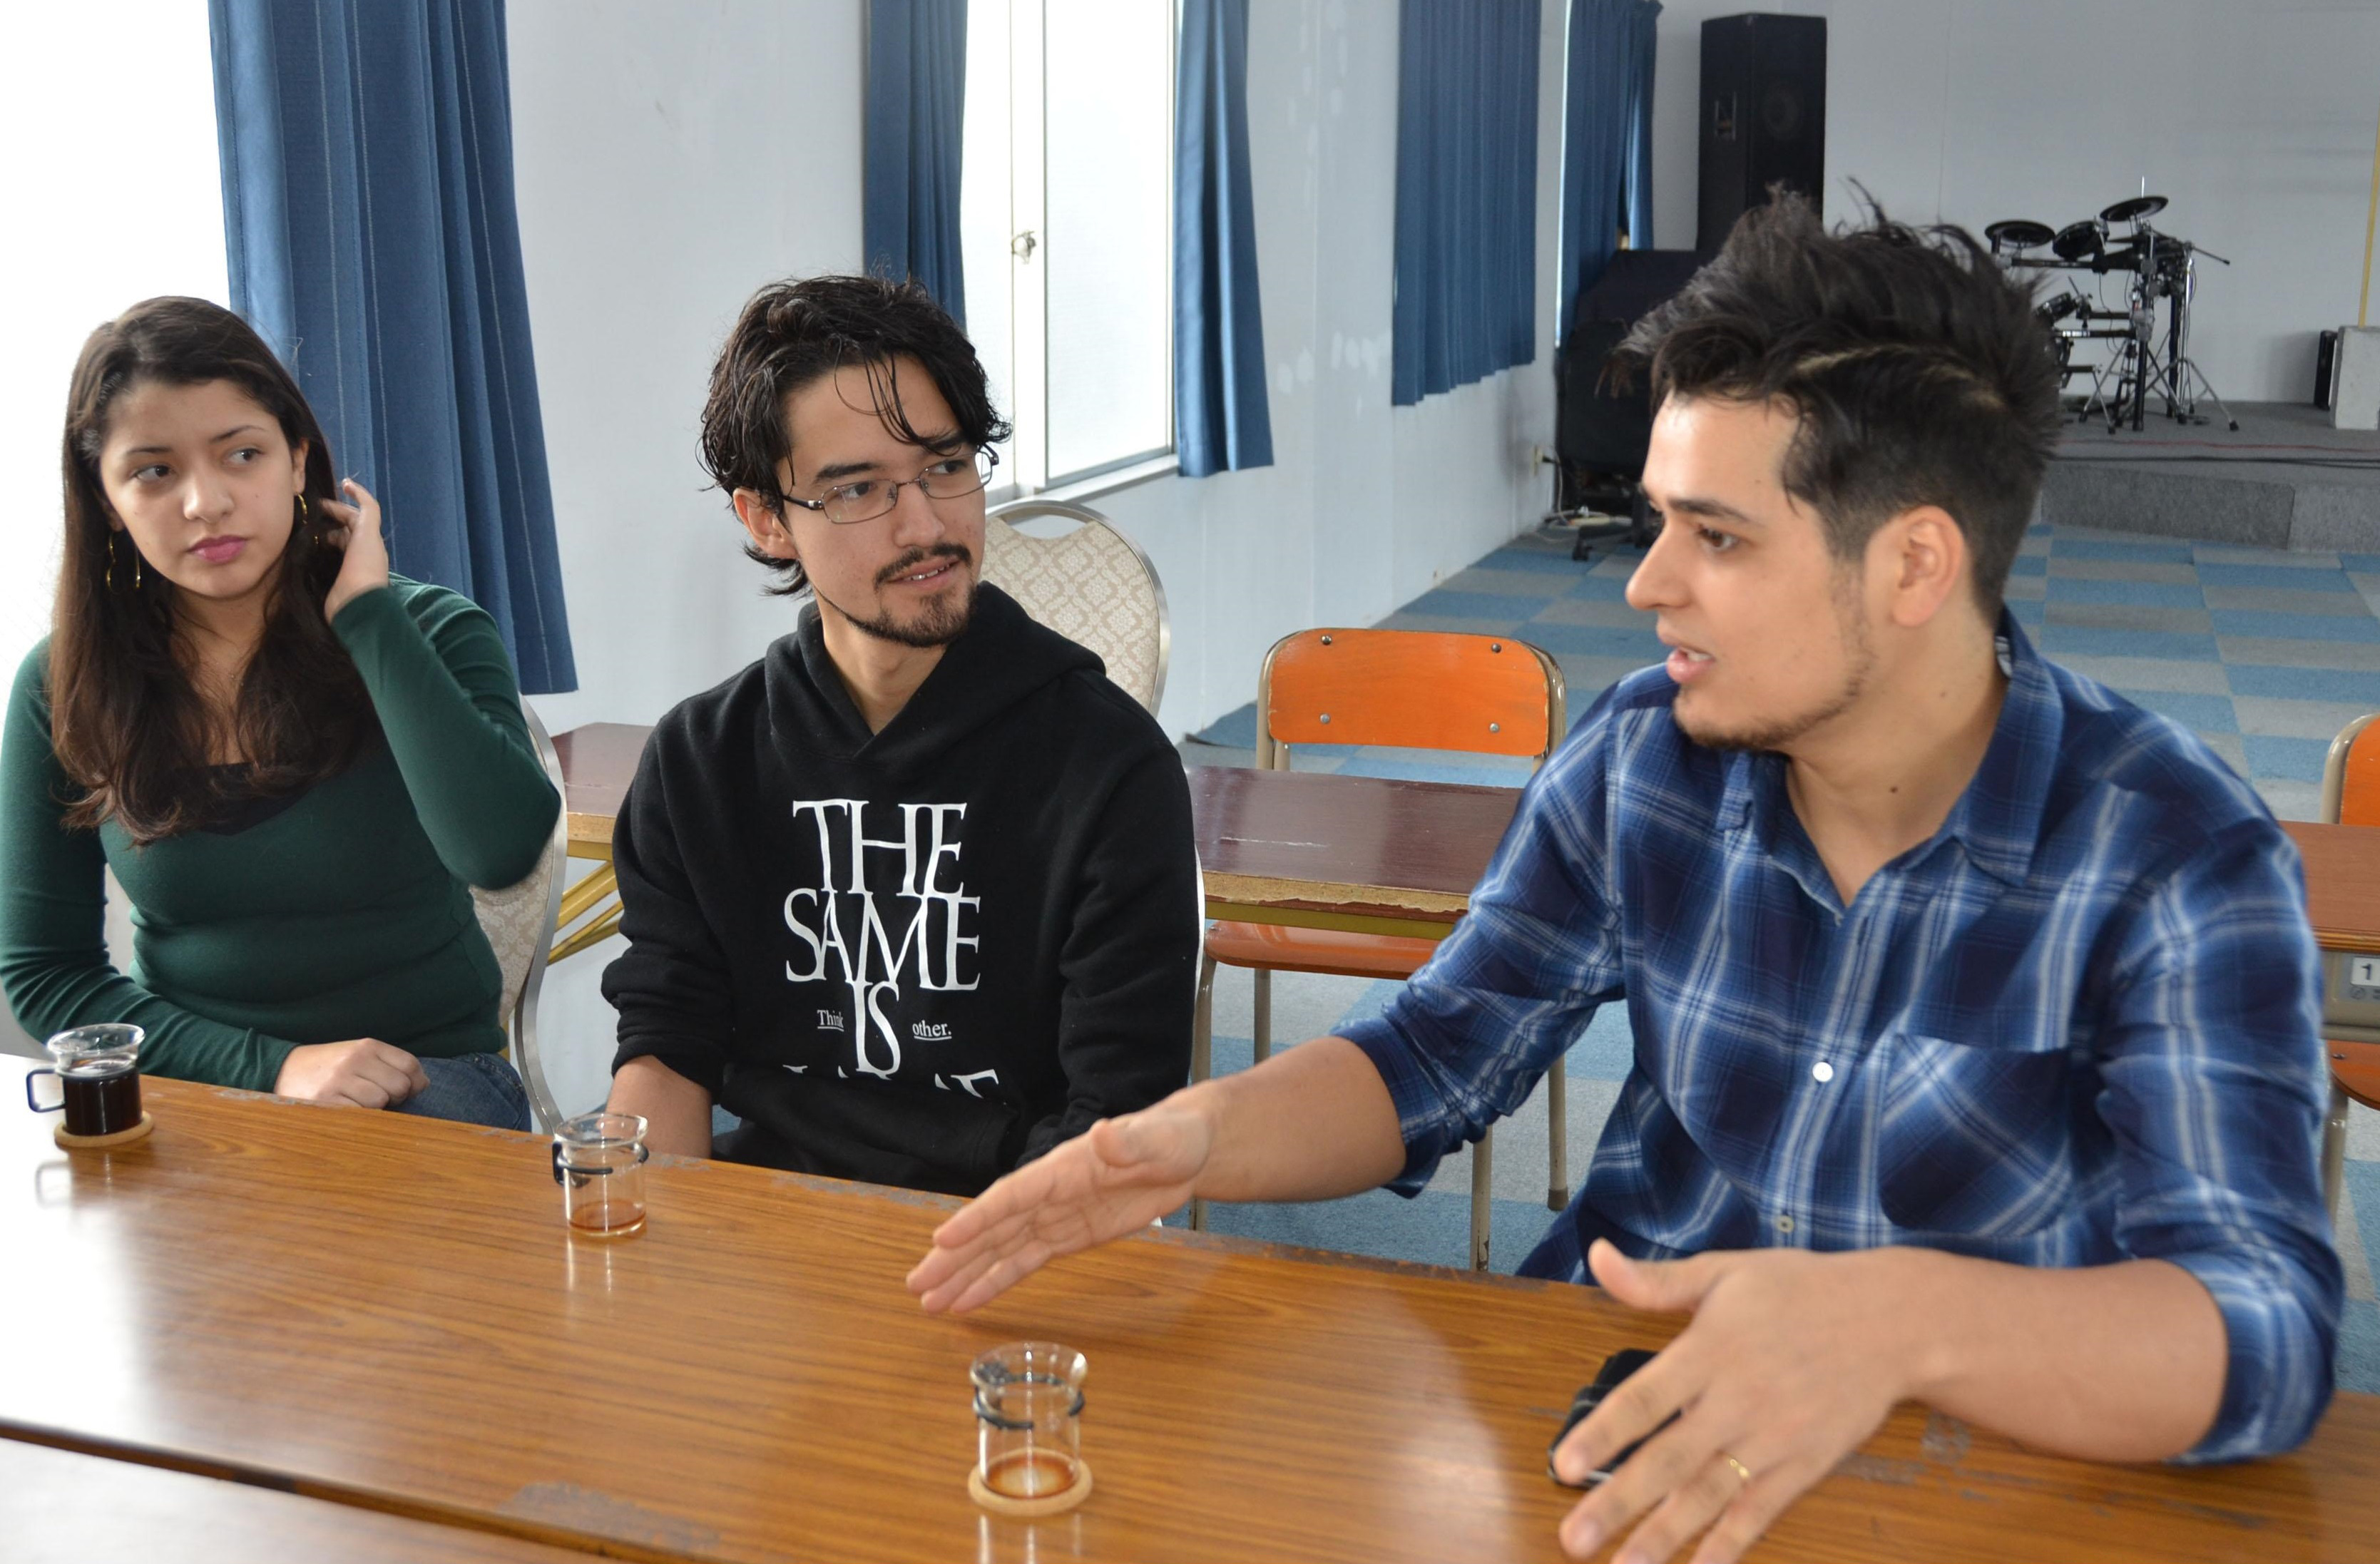 Japanese-Brazilians Silas Alves Okada (right) and Lucas Toshio Suzuchi (center), talk about their teenage experiences of being left out of school while Suzuchi's wife looks on in November in Kamisato, Saitama Prefecture.   KYODO